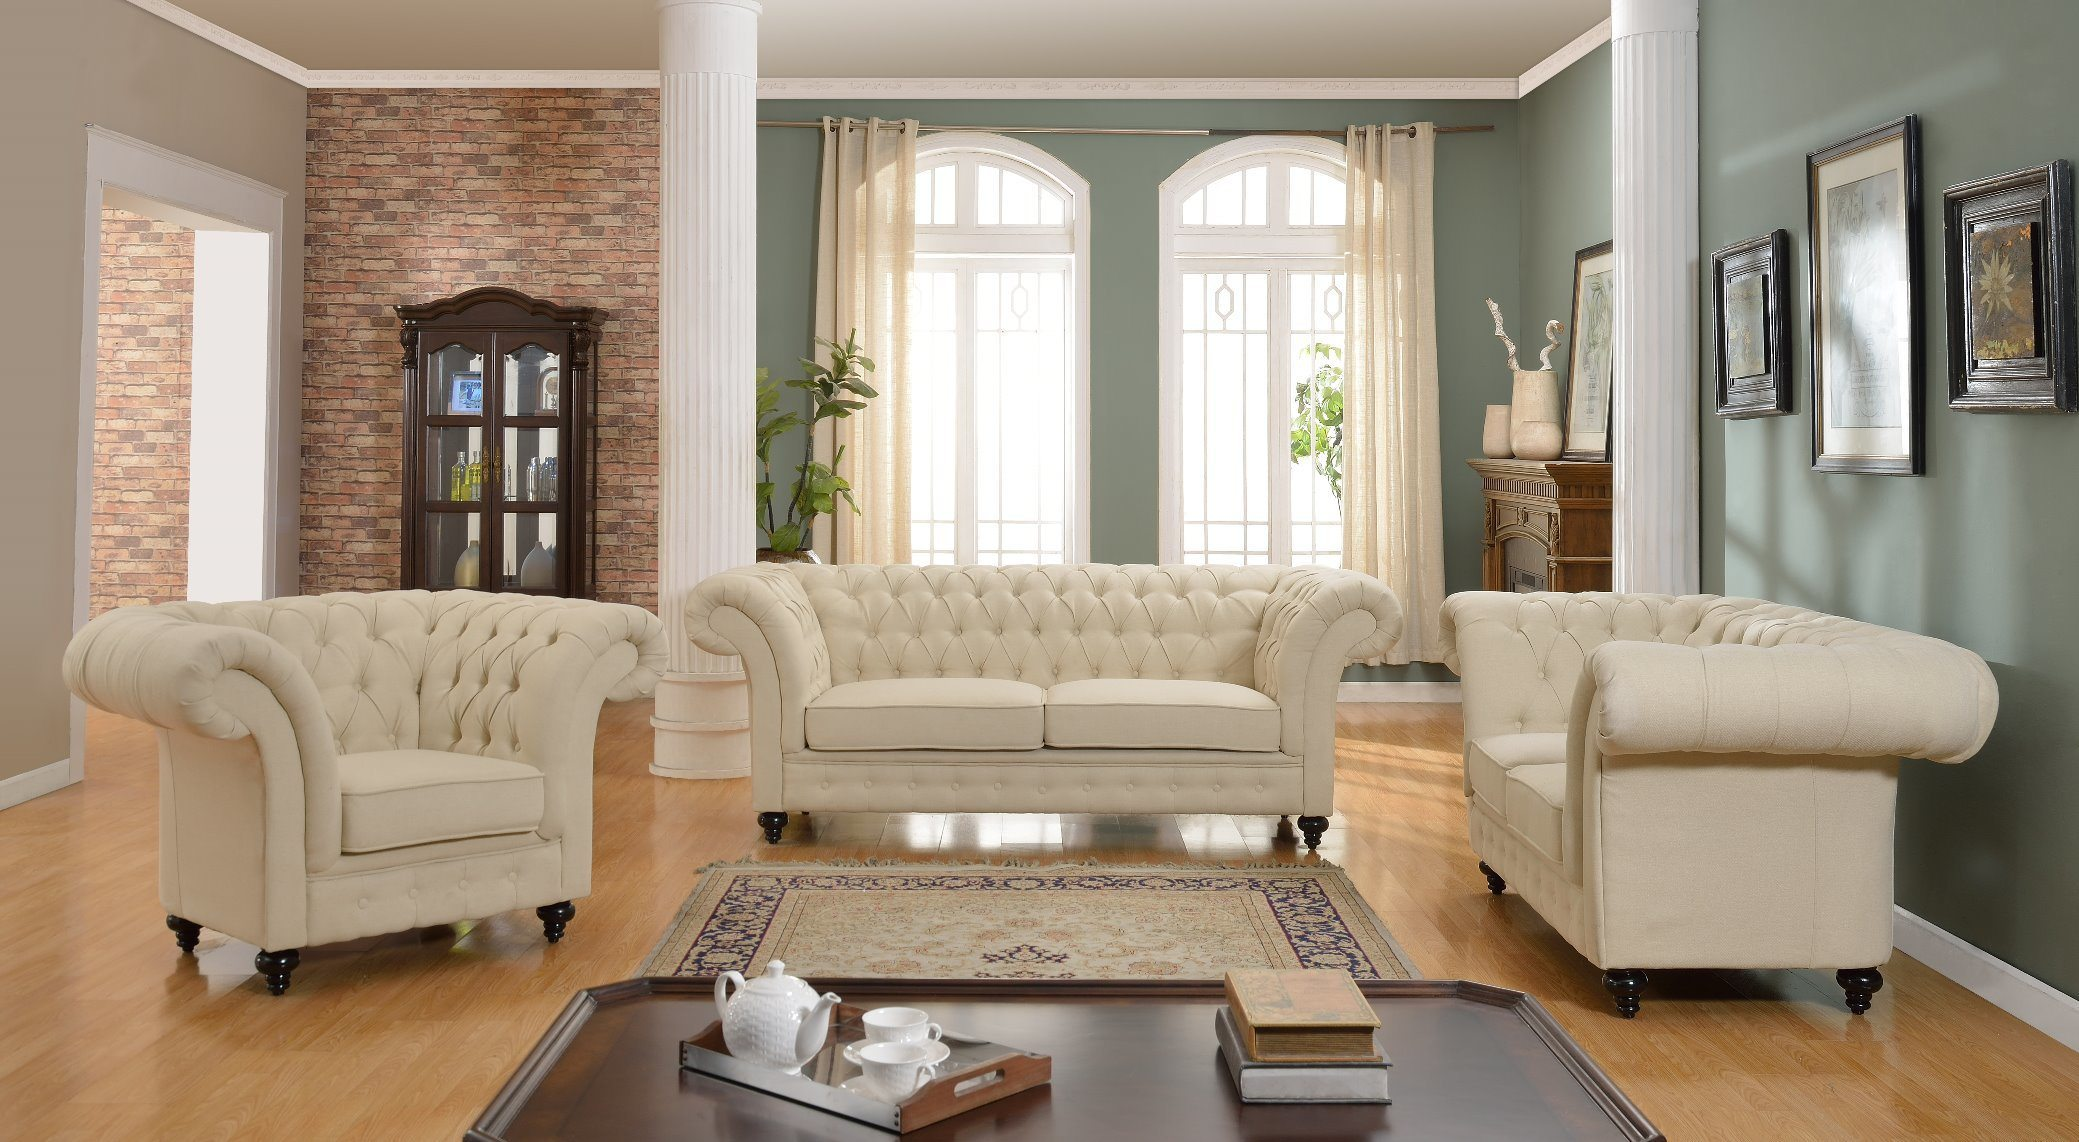 China 1 2 3 Sectional Fabric Deep Button Chesterfield Sofa Set China Chesterfield Sofa Fabric Sofa